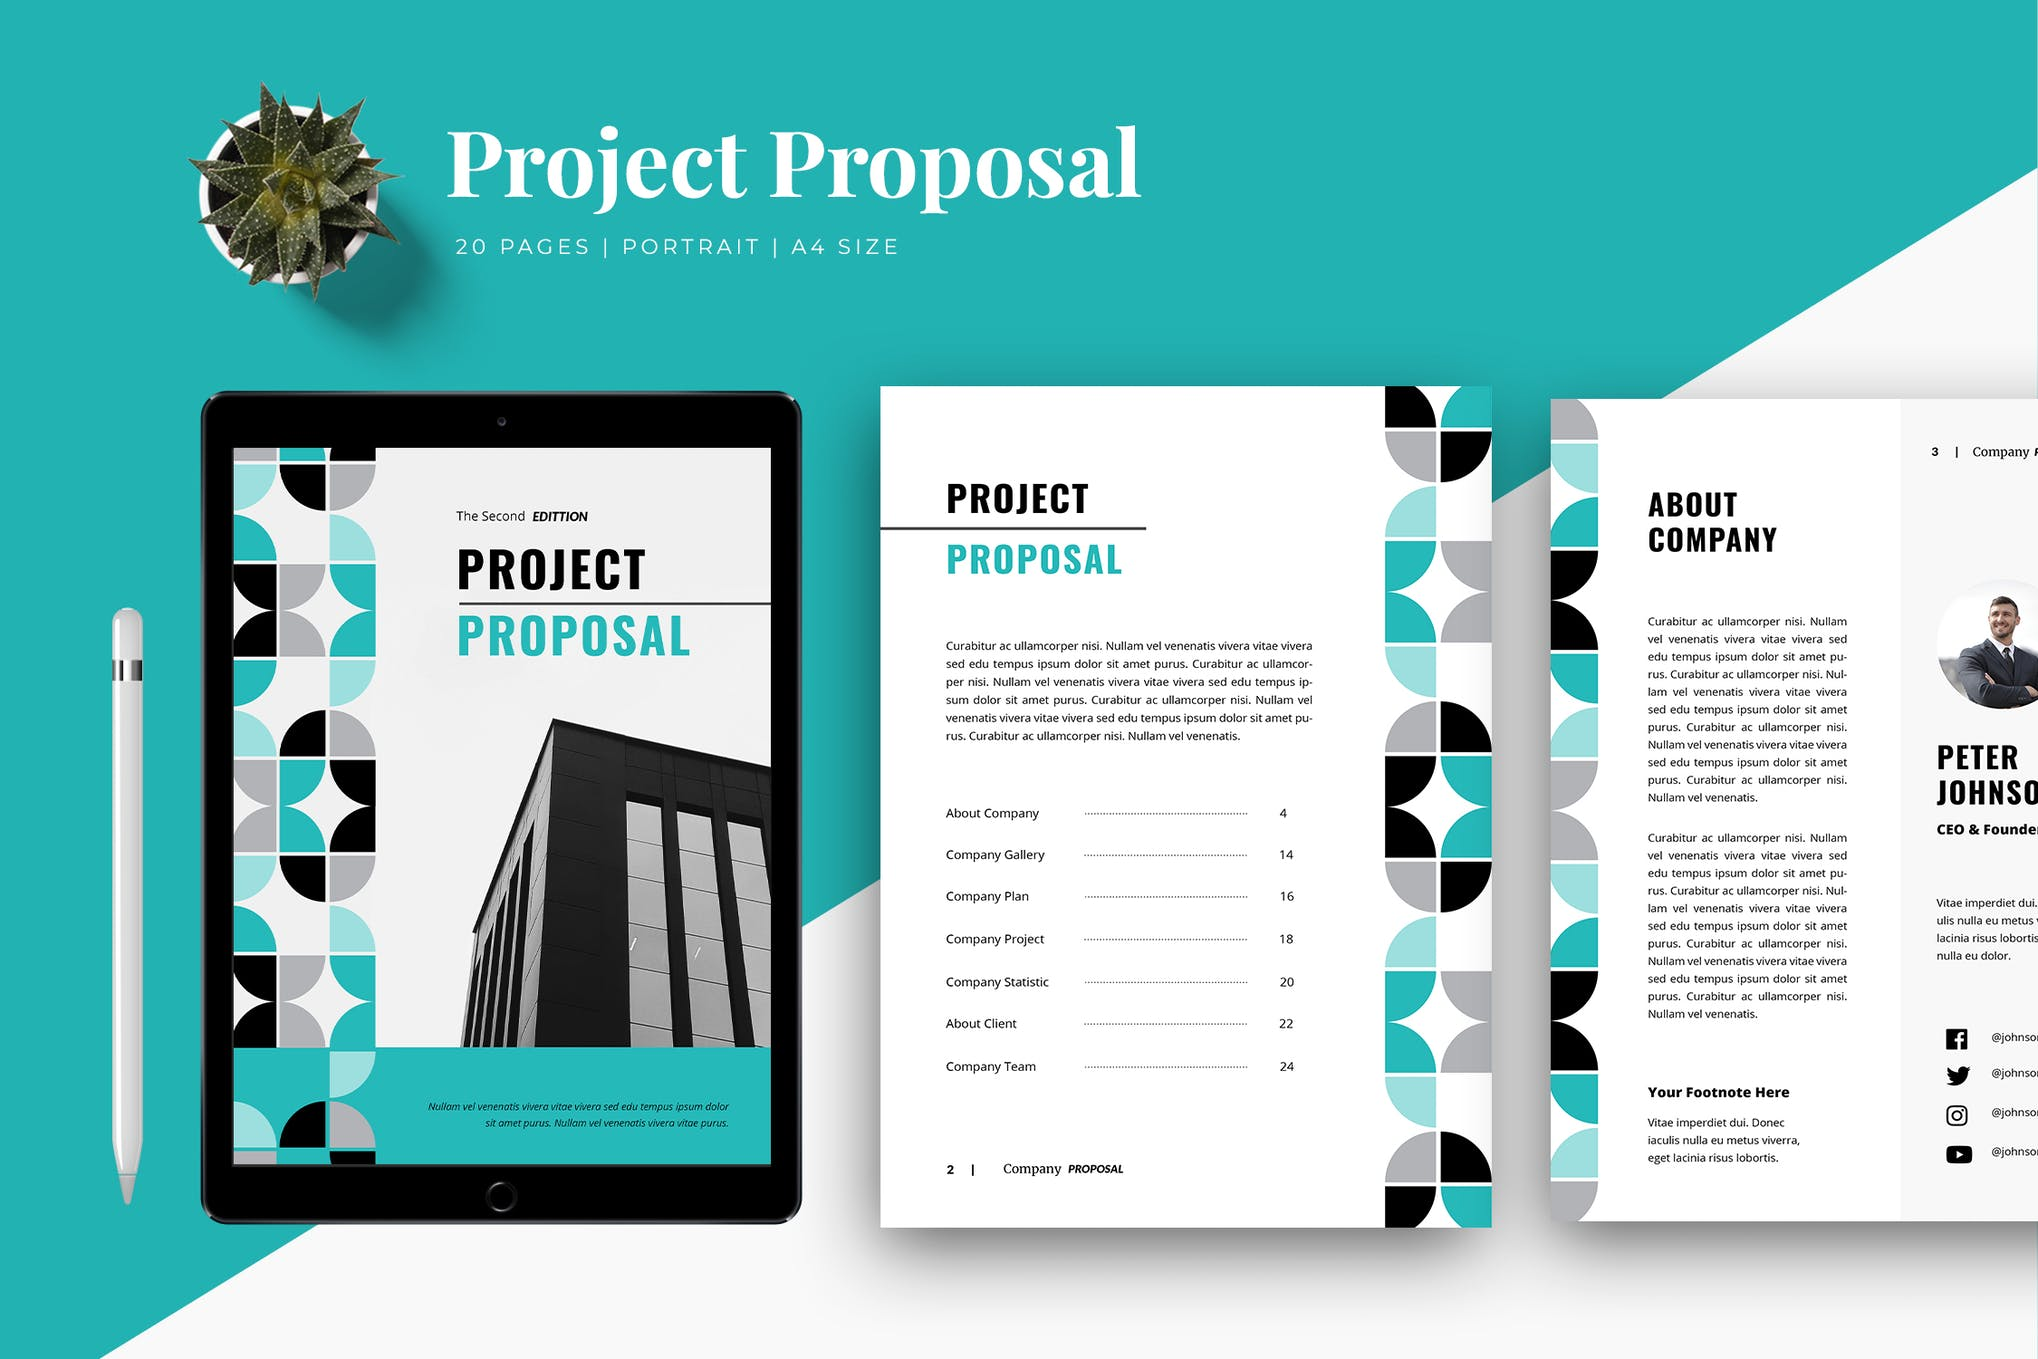 Free sample business plan graphic design company thesis statement for frankenstein research paper